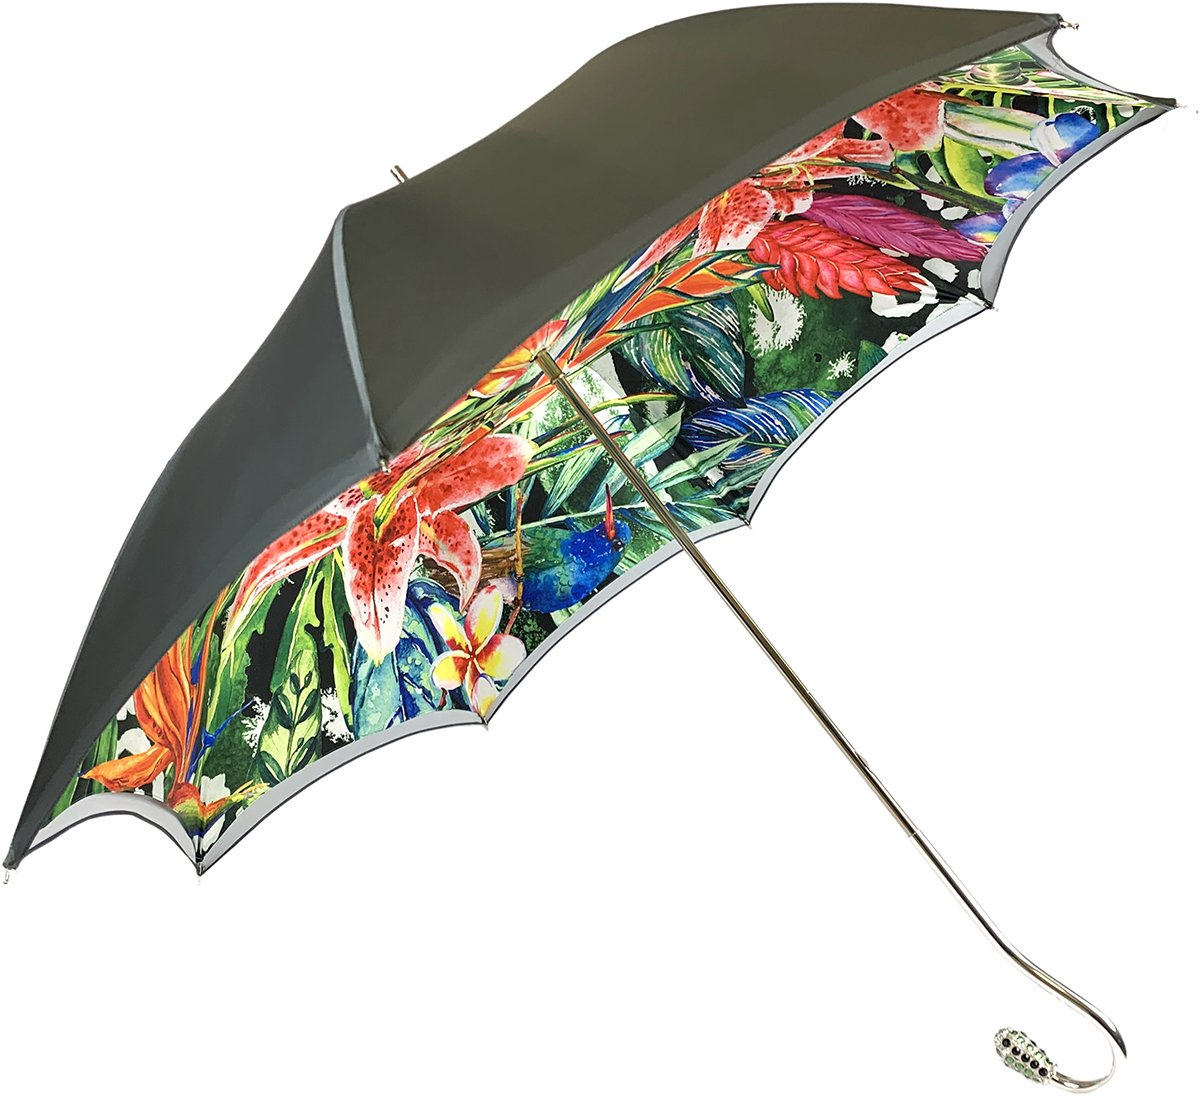 Grey Umbrella With Floral Print Interior - Exclusive Pattern - IL MARCHESATO LUXURY UMBRELLAS, CANES AND SHOEHORNS